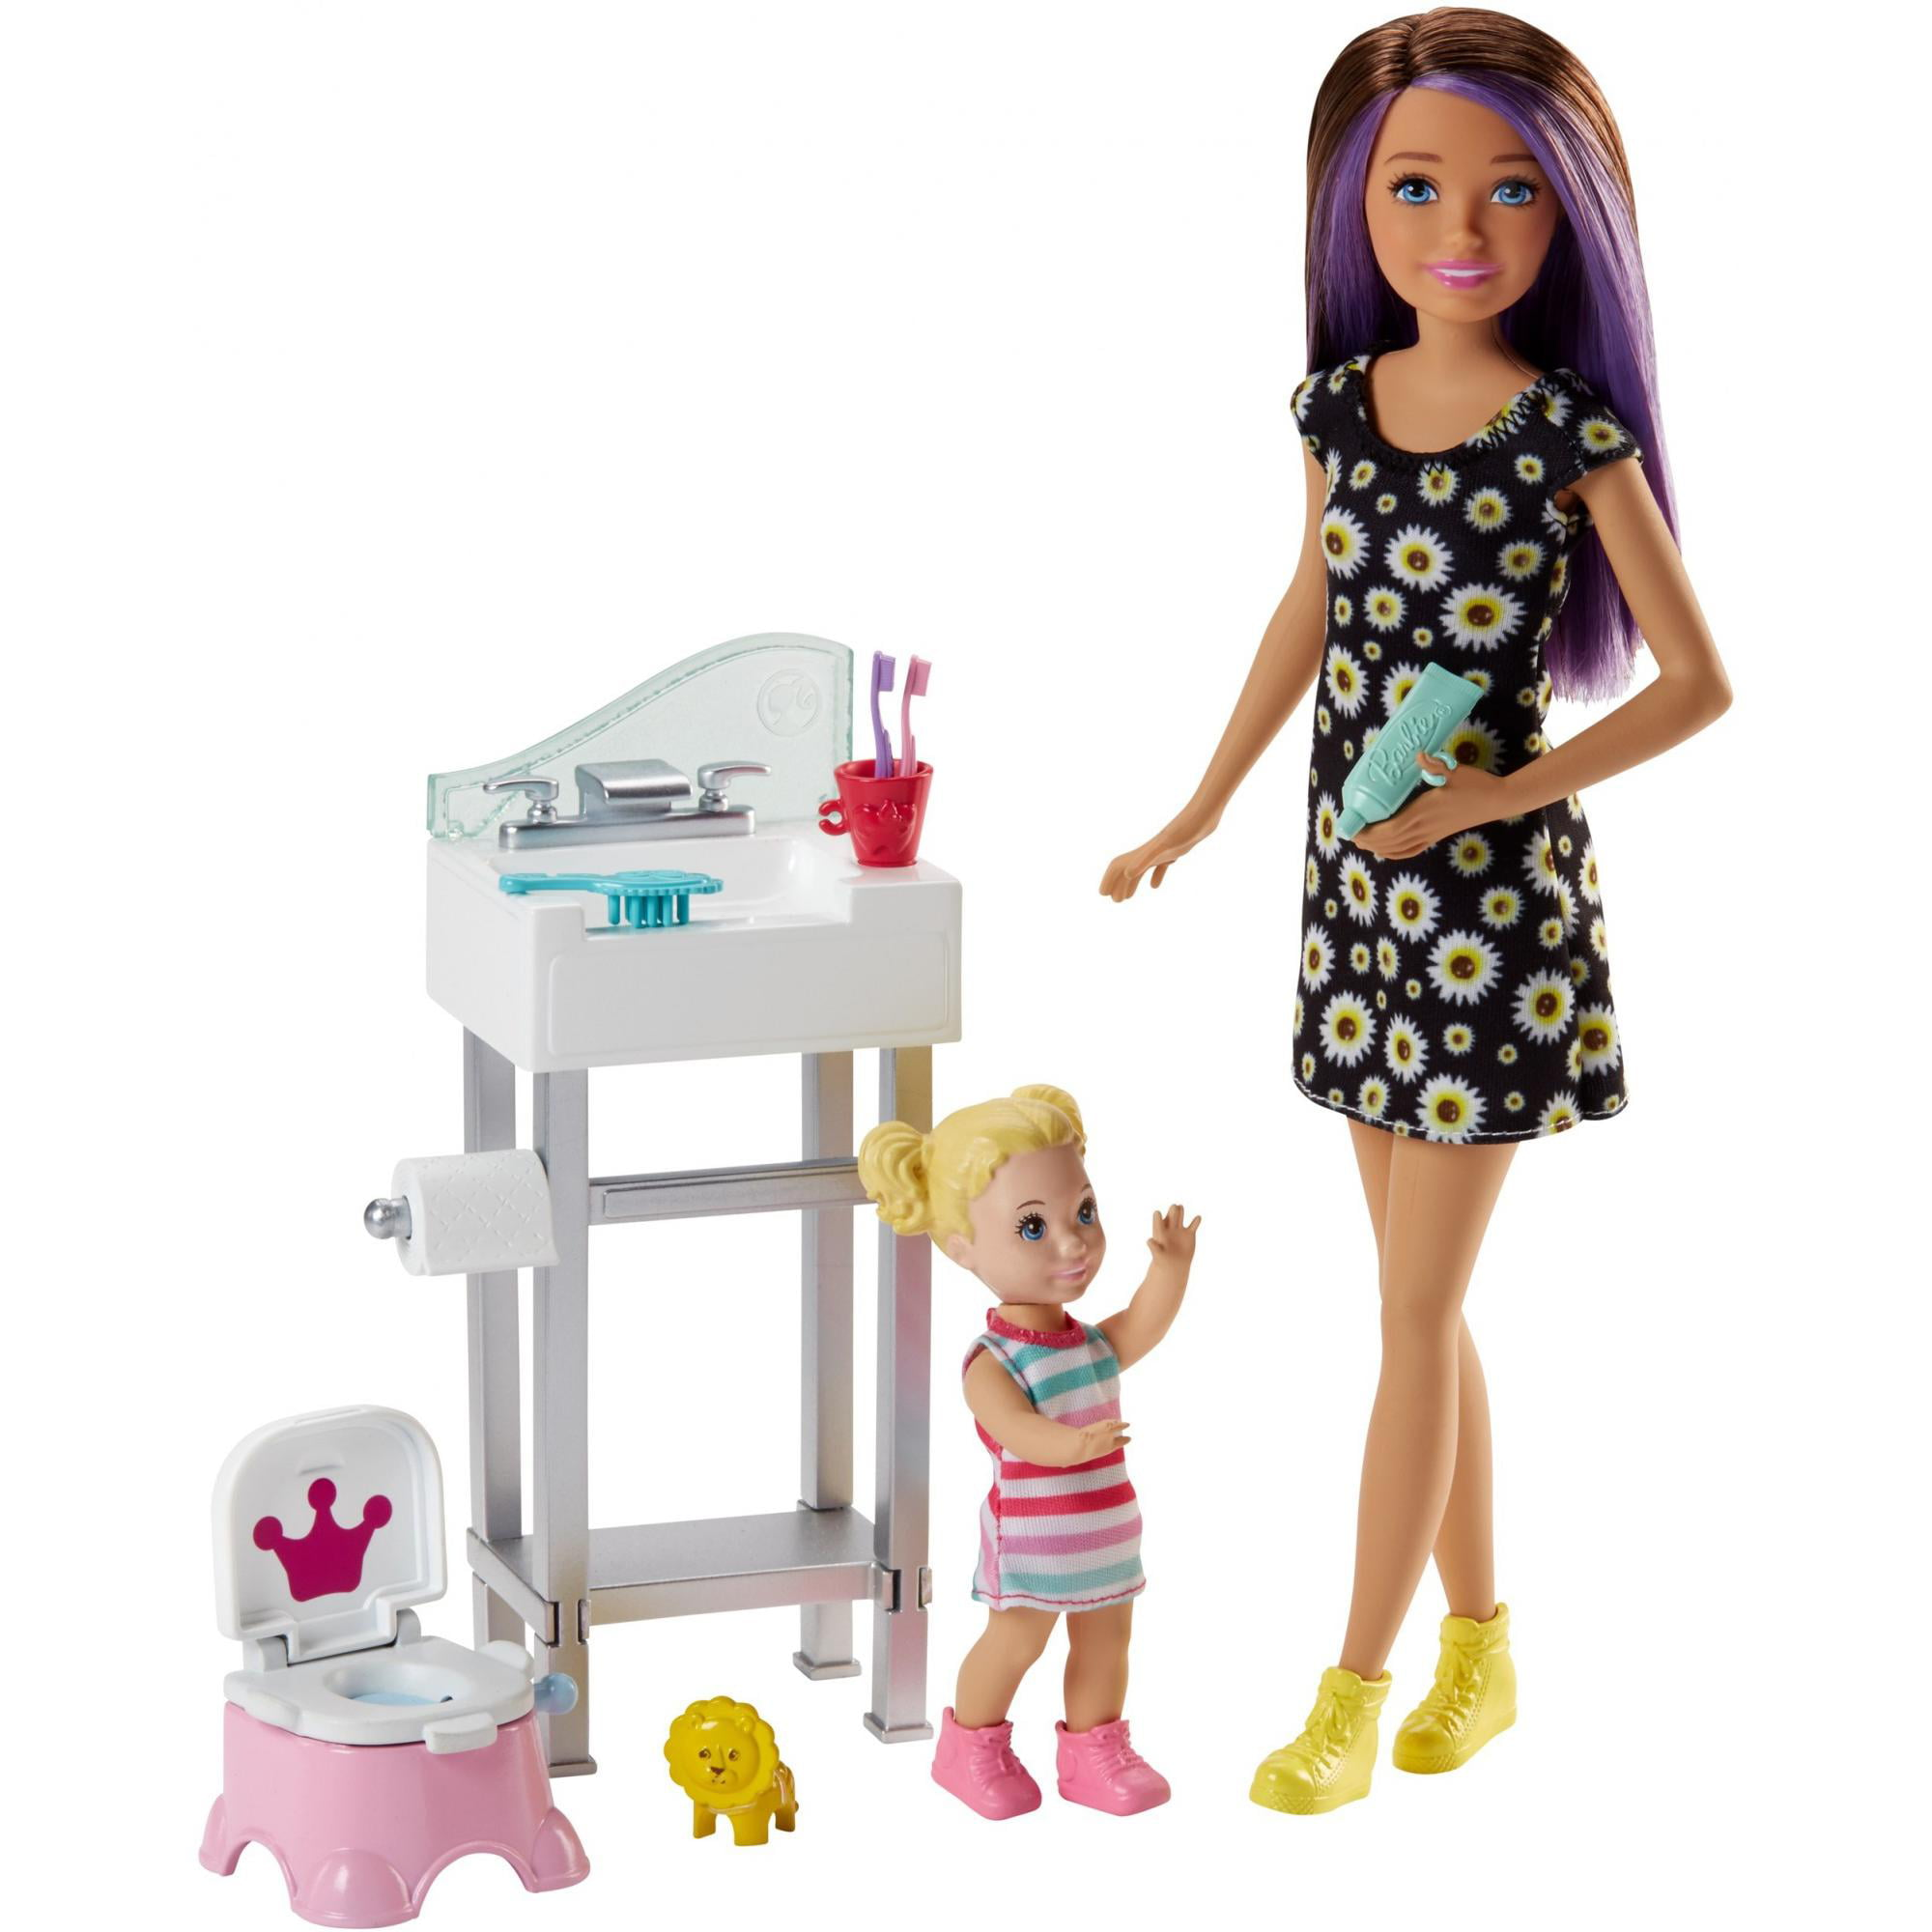 Barbie Skipper Babysitters Inc. Potty Training Doll and Playset